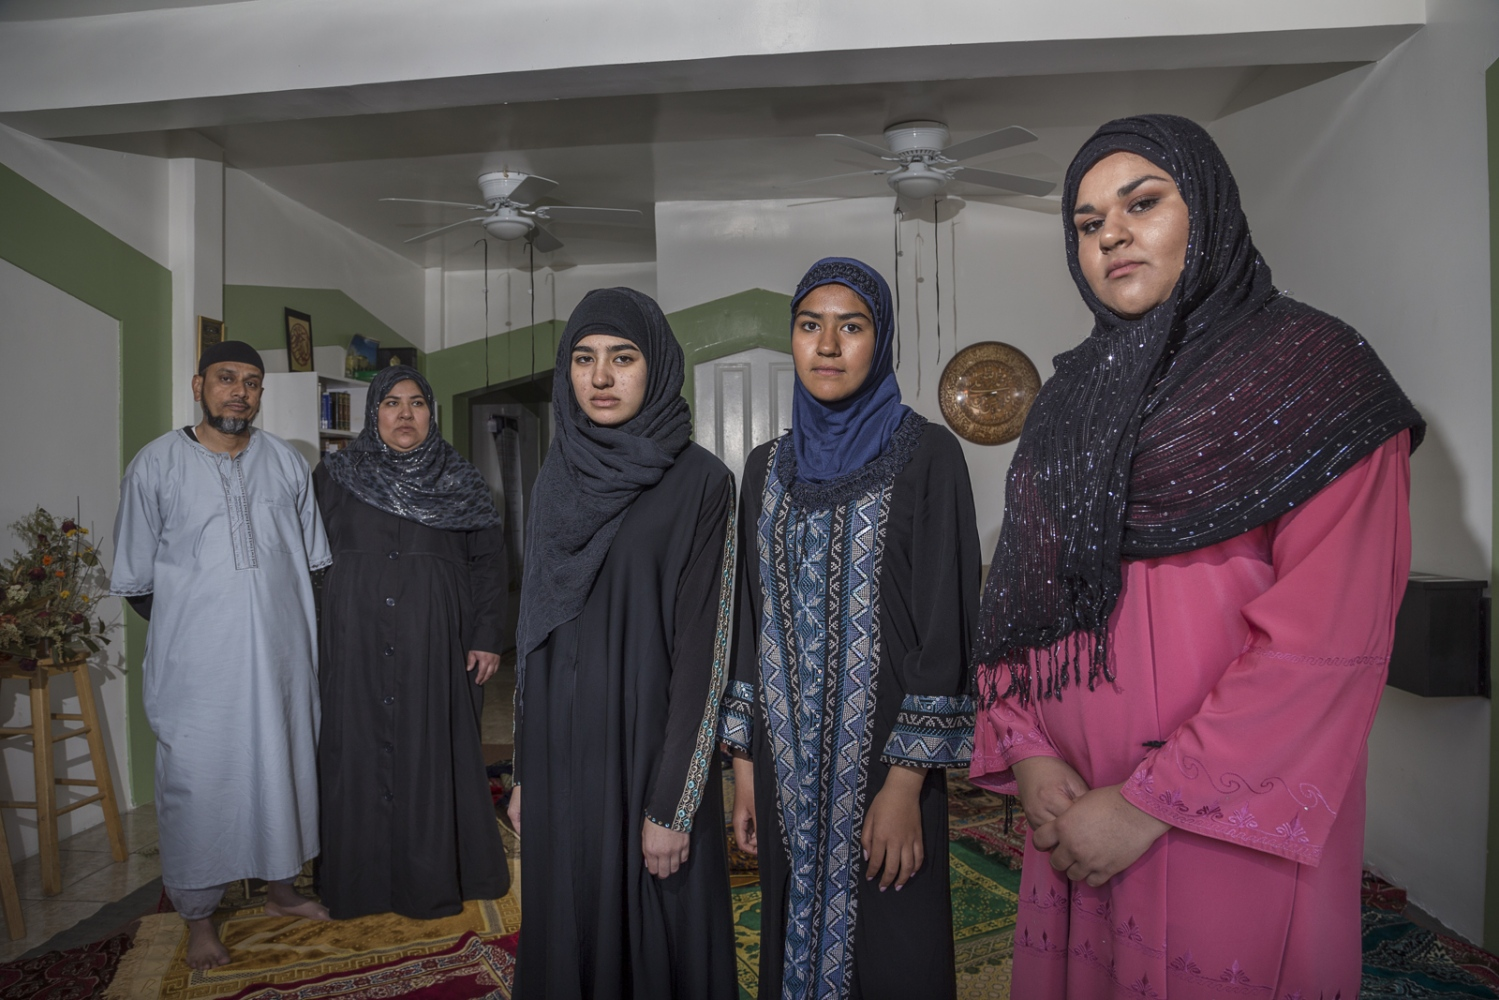 Imam Parvez Haque and his wife Monica Pulido with their three daughters Shaiza, Hanna and Heather at Rosarito's Masjid el Noor, in Mexico. Parvez Haque is originally from Pakistan but has been living in Mexico for over 20 years. His wife and daughters recently moved to Santa Ana, California, where the girls attend high school.